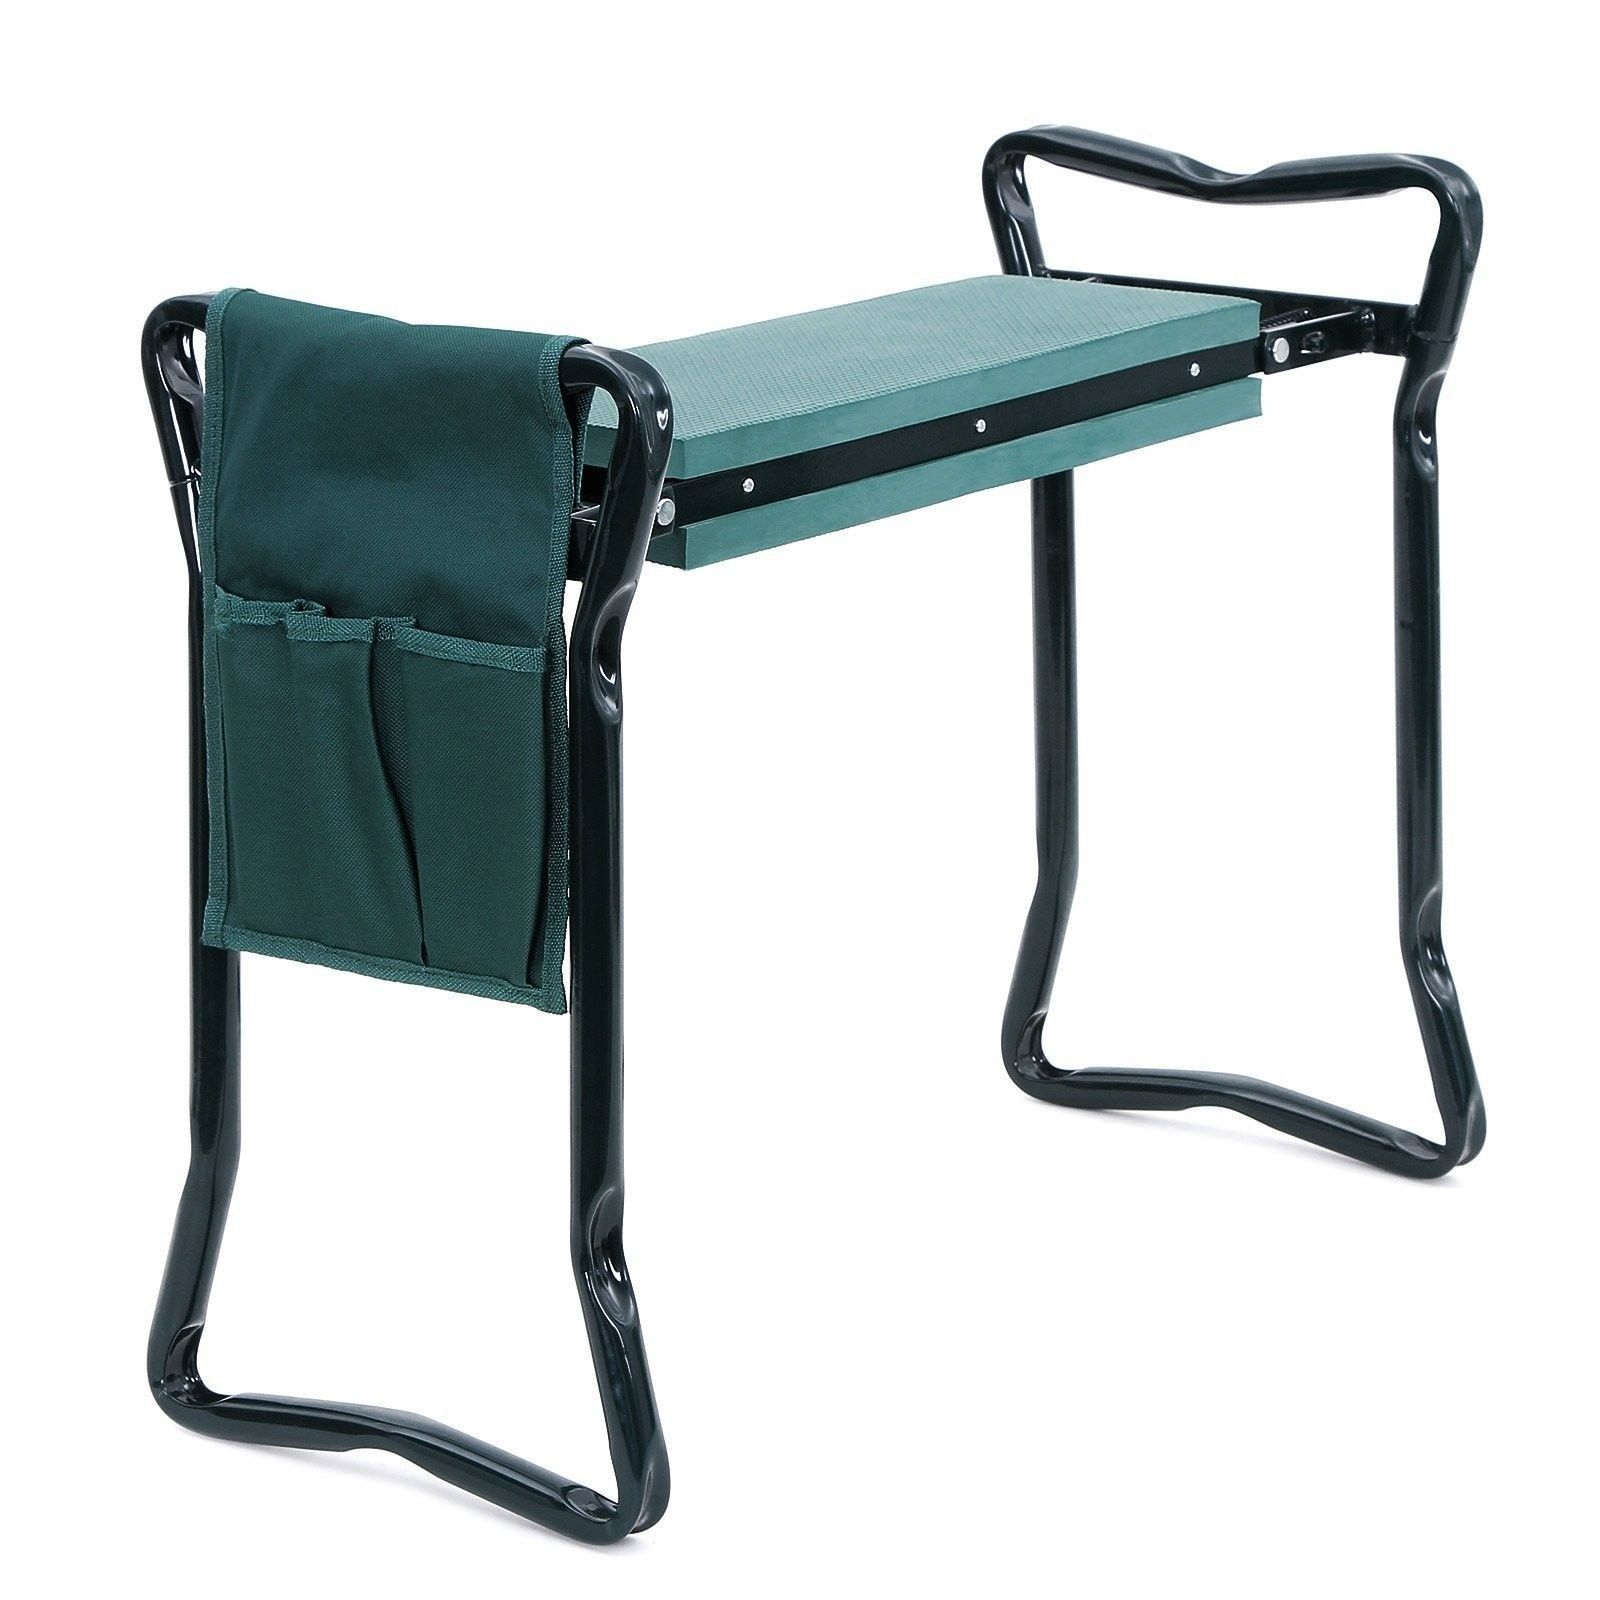 set garden tool piece iswees portable l tools chair stool ergonomic gardening with